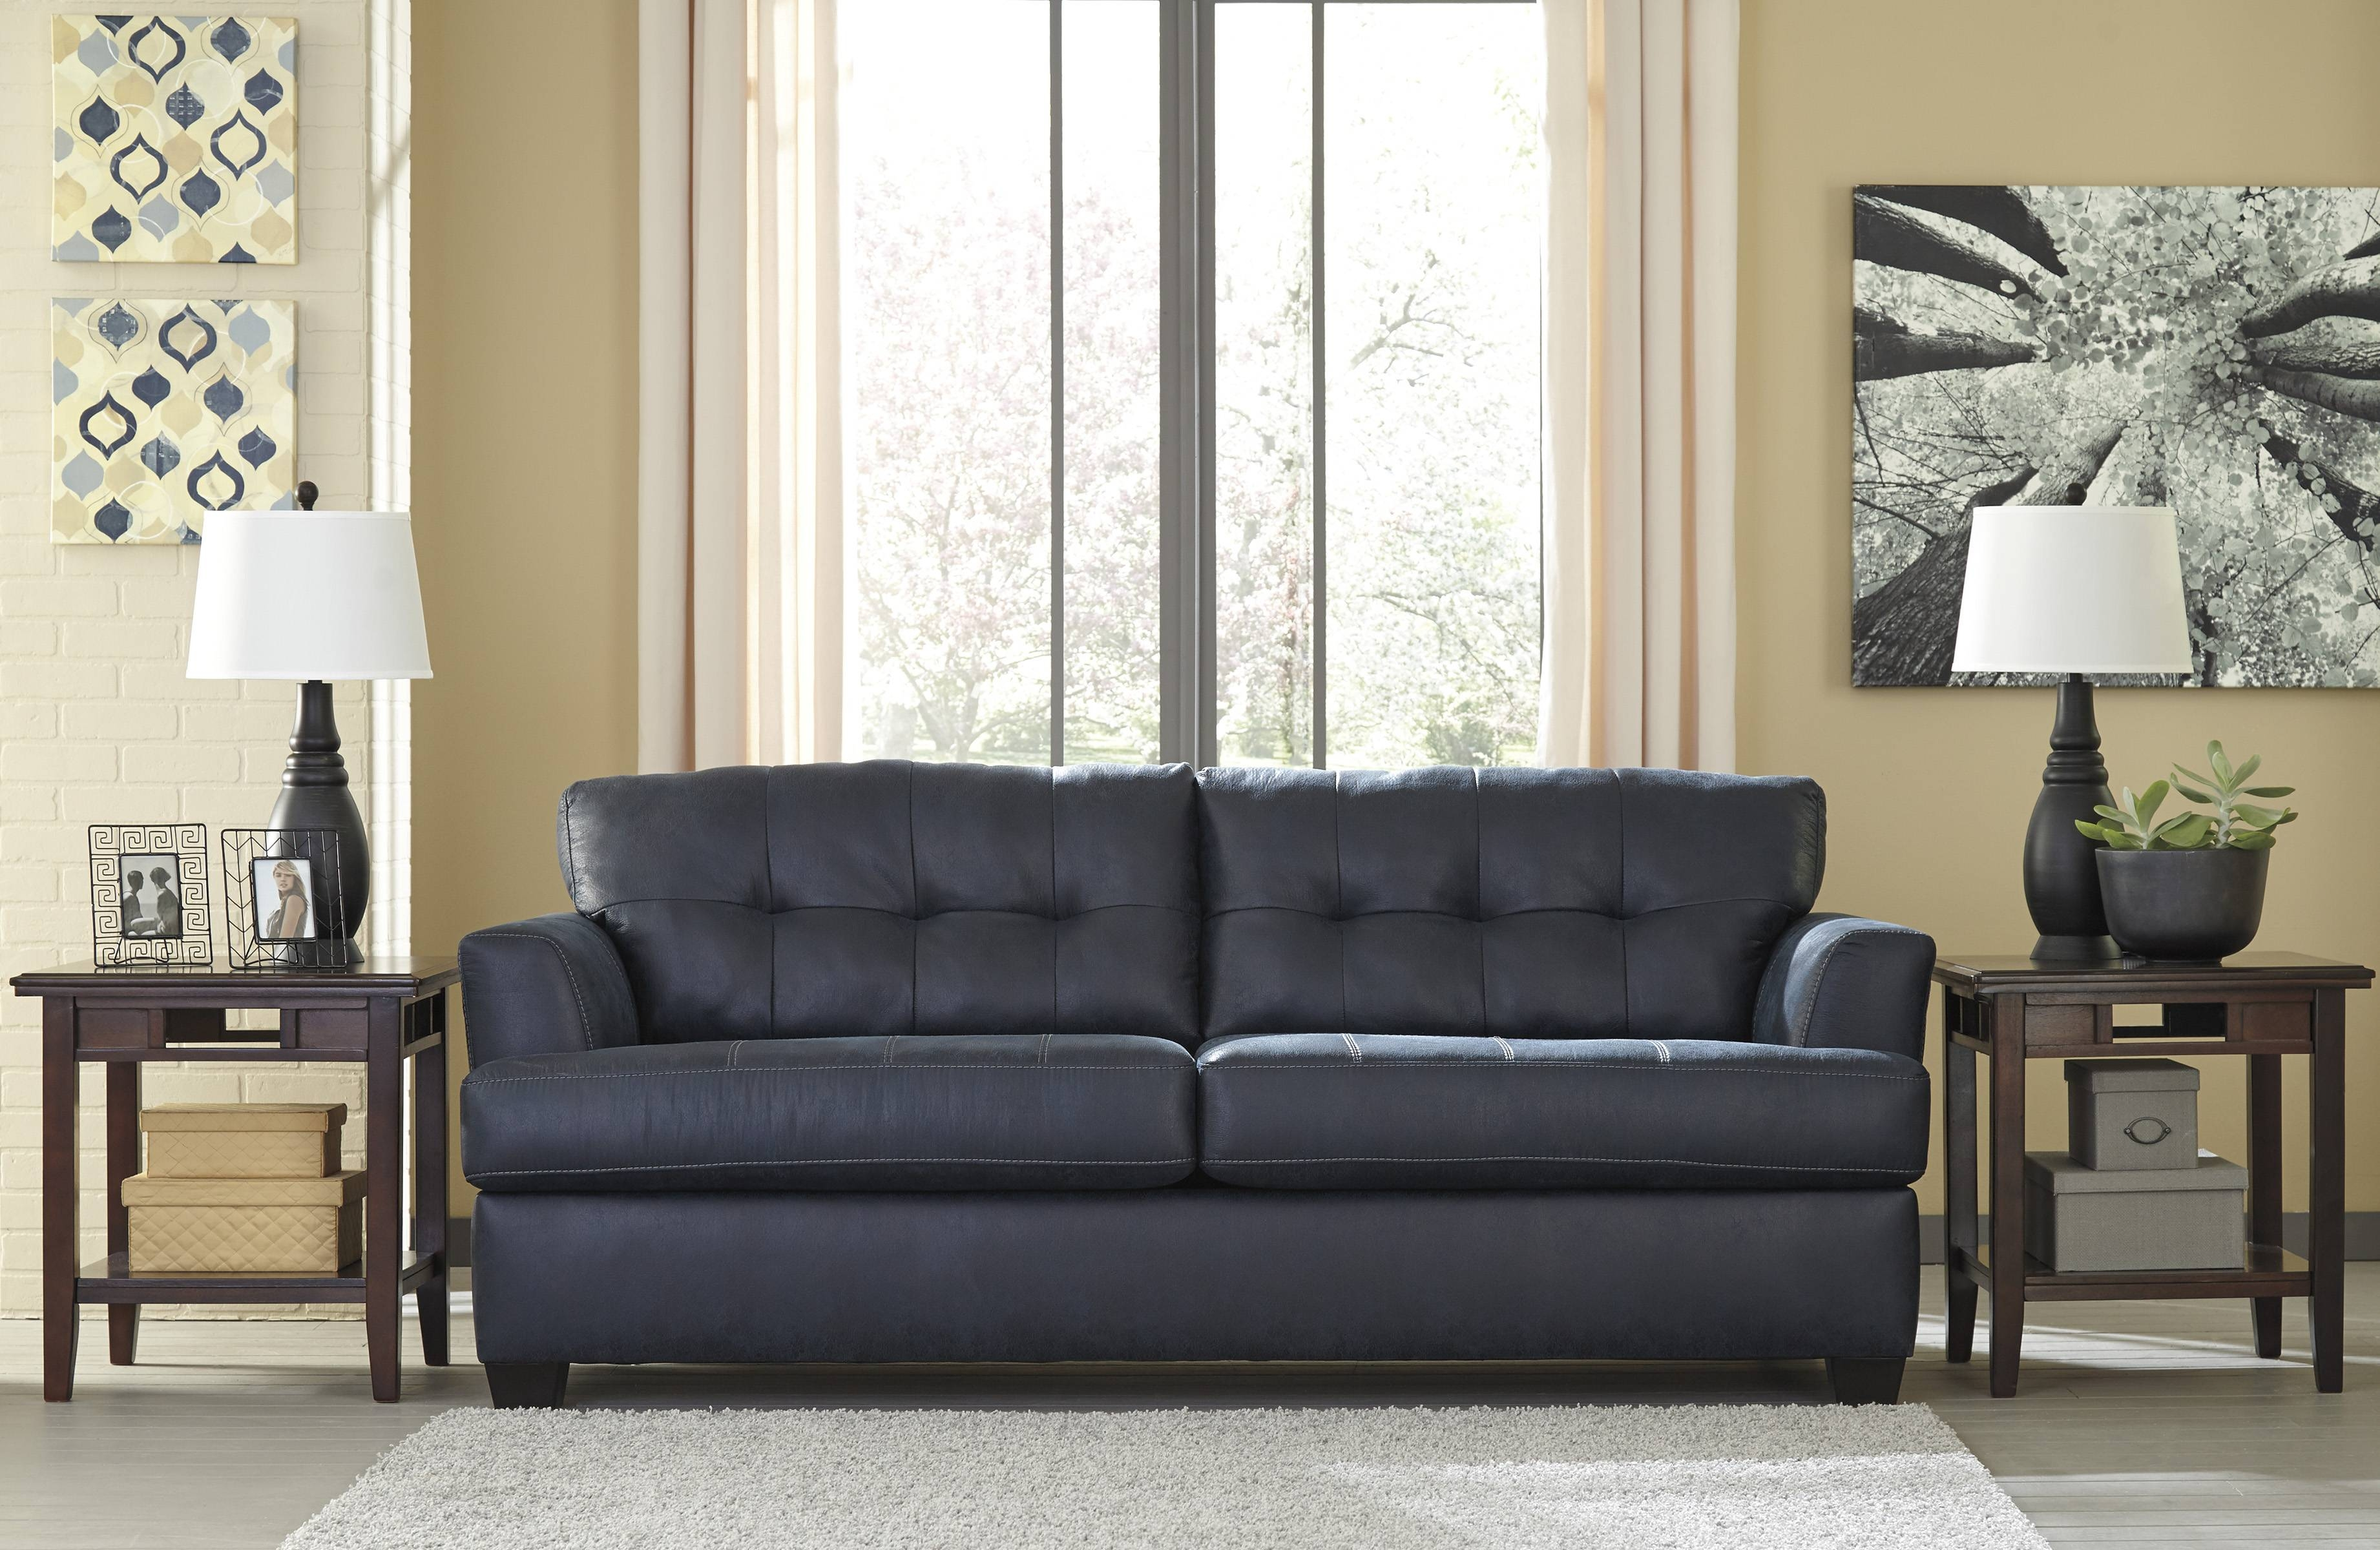 Ashley Inmon Navy Sofa And Love – Dream Rooms Furniture Intended For Ashley Tufted Sofa (Image 6 of 30)